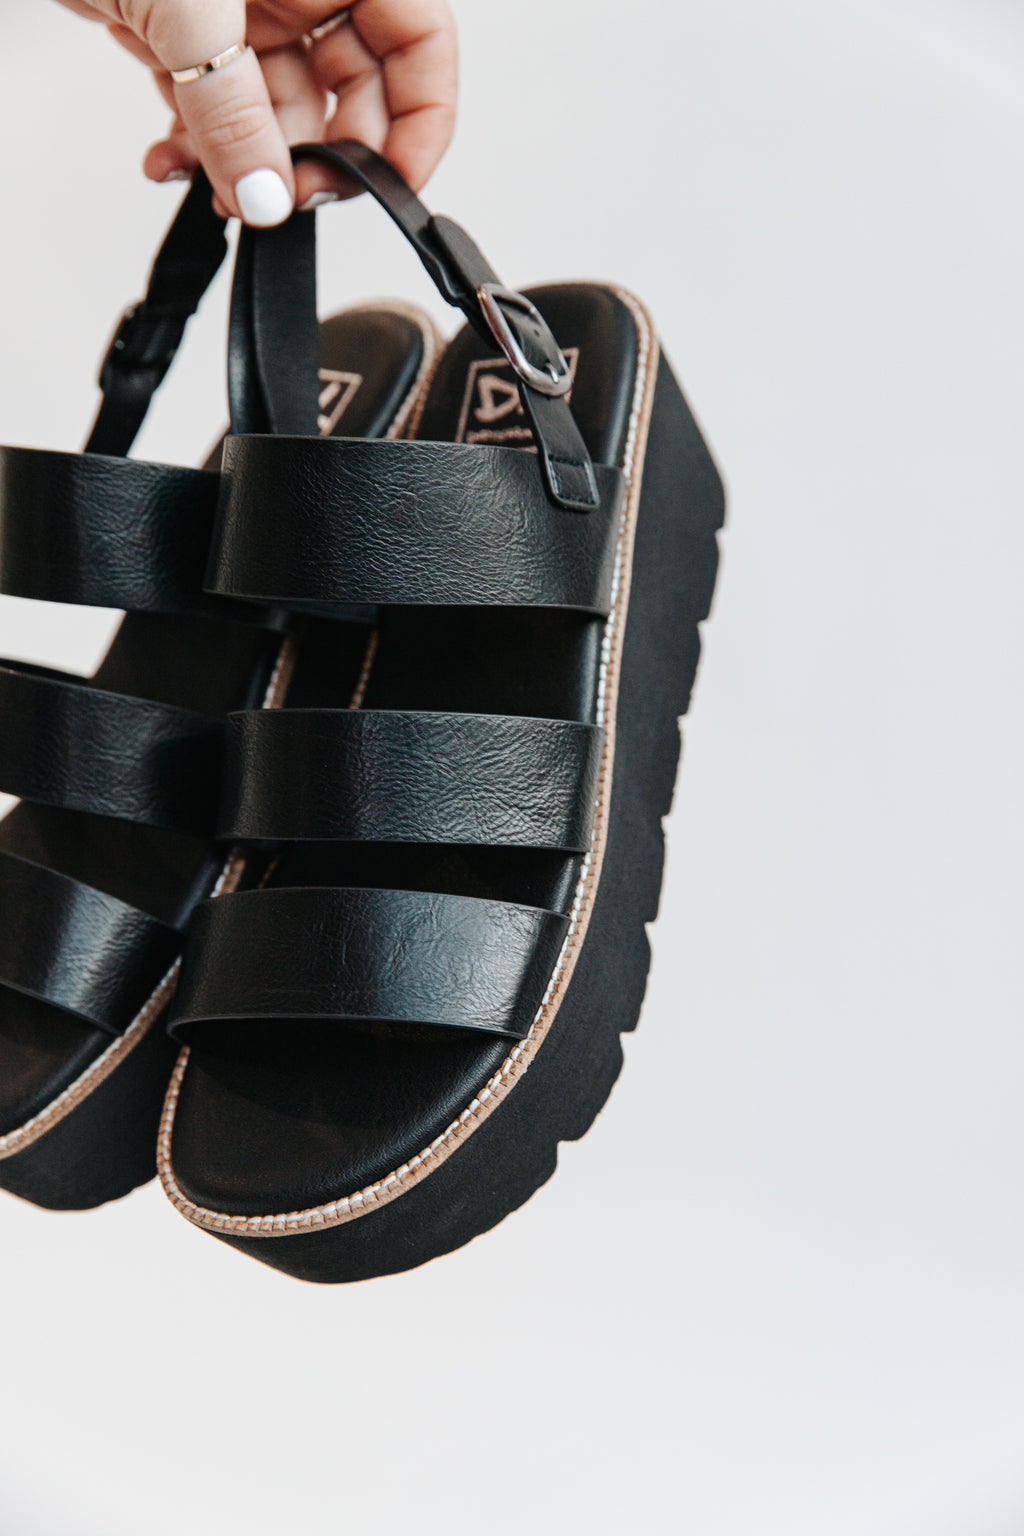 Chinese Laundry: The Pendulum Platform Strap Sandal in Black, studio shoot; side view